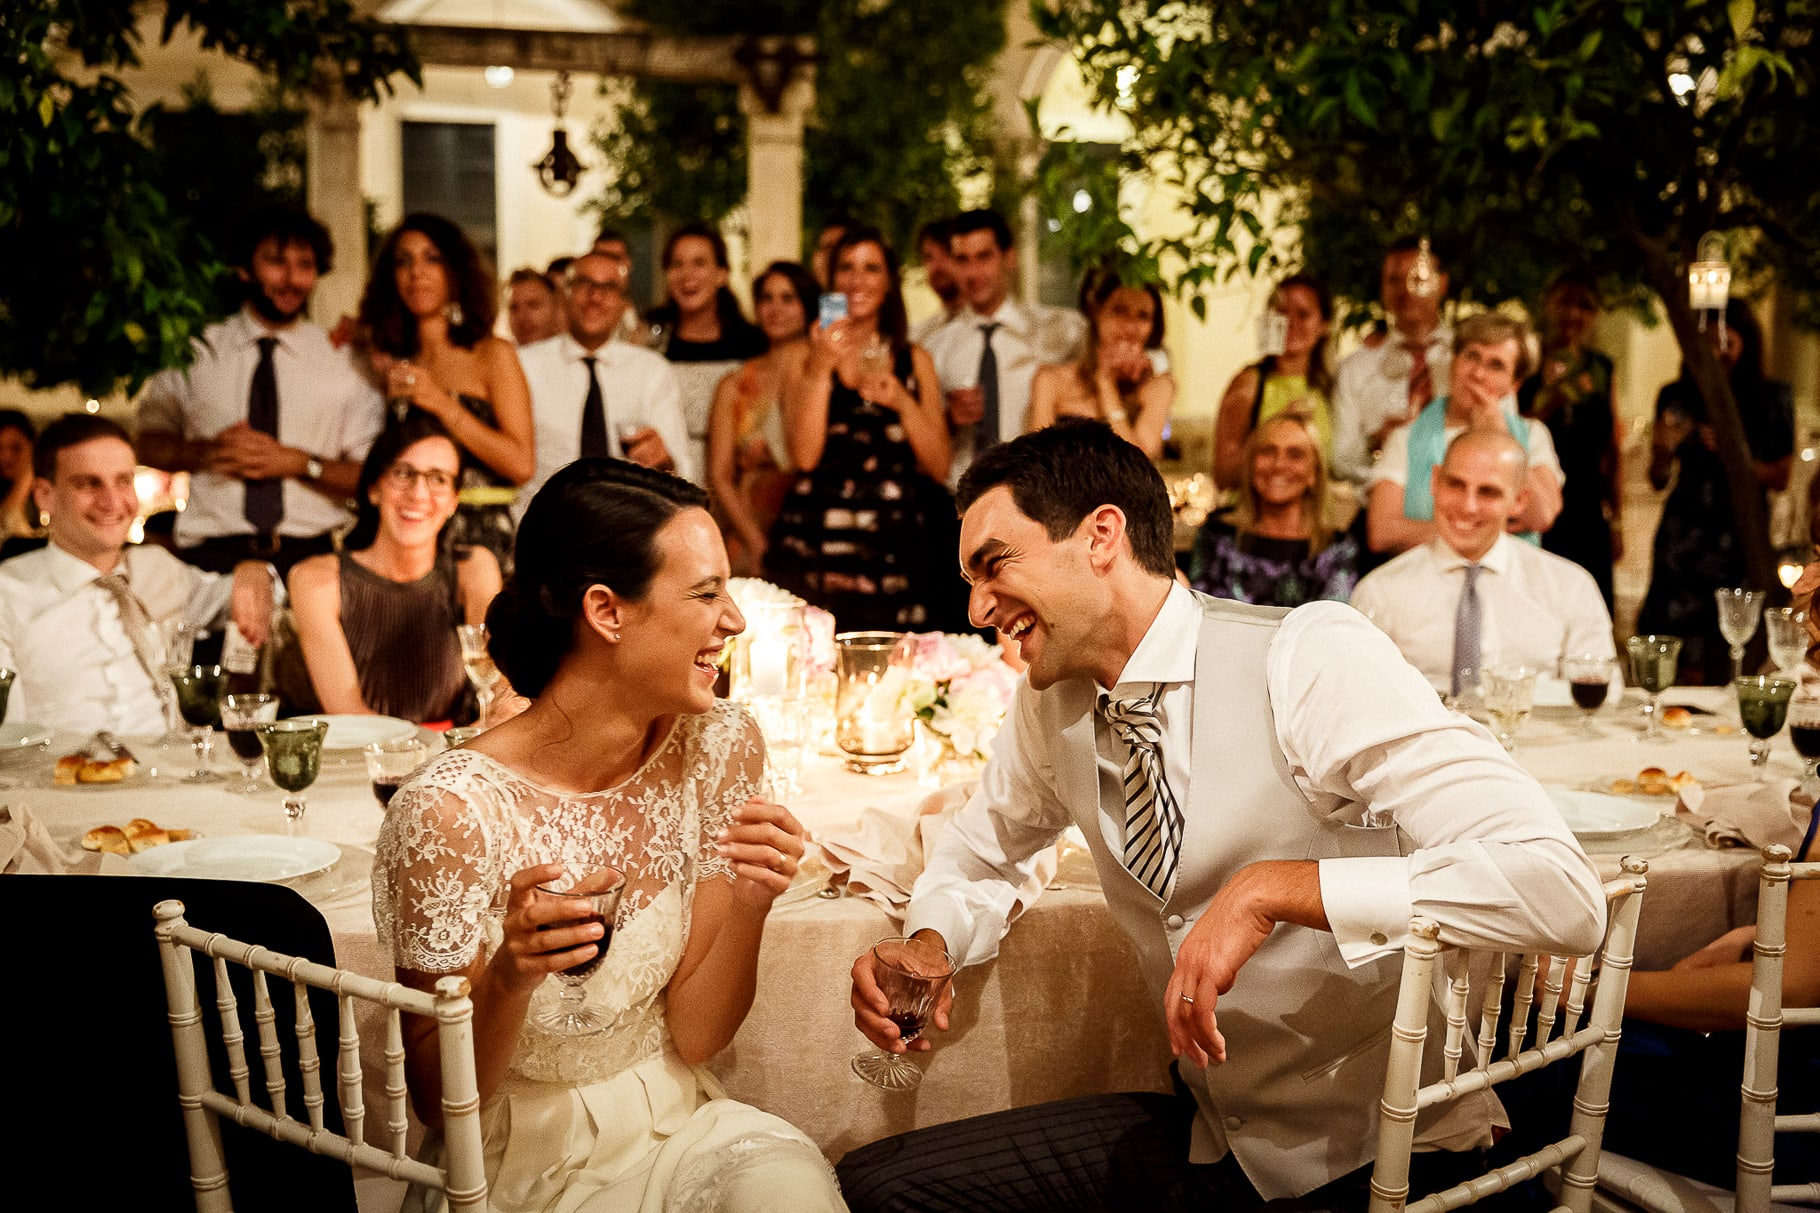 the bride and groom laugh and toast with the guests during the wedding reception in Rome